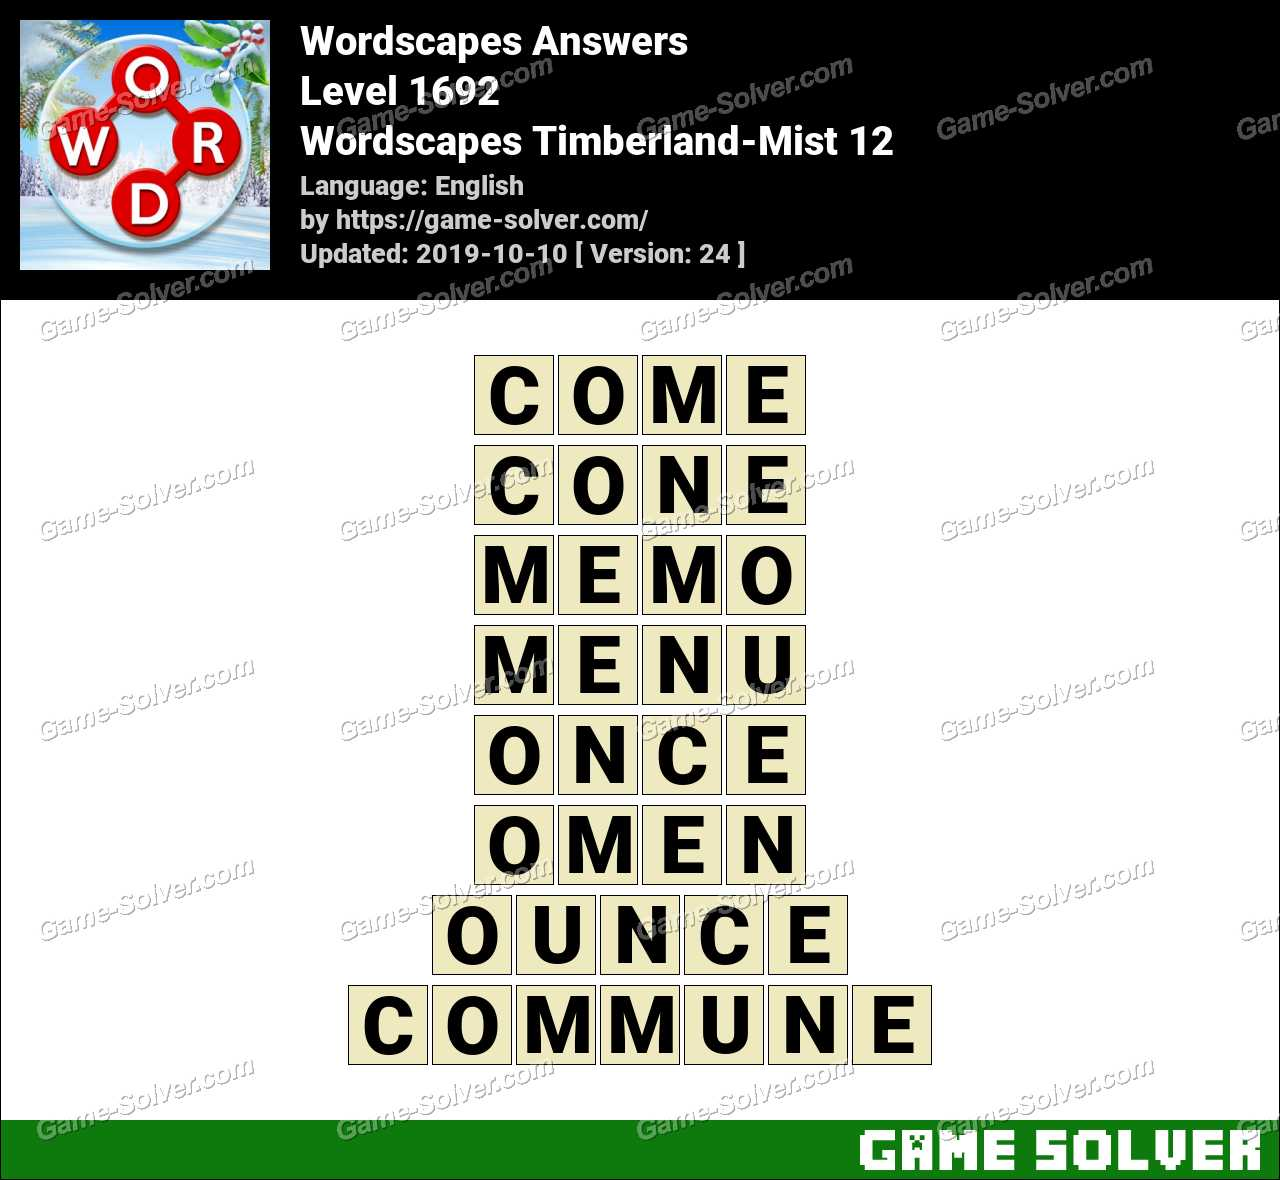 Wordscapes Timberland-Mist 12 Answers